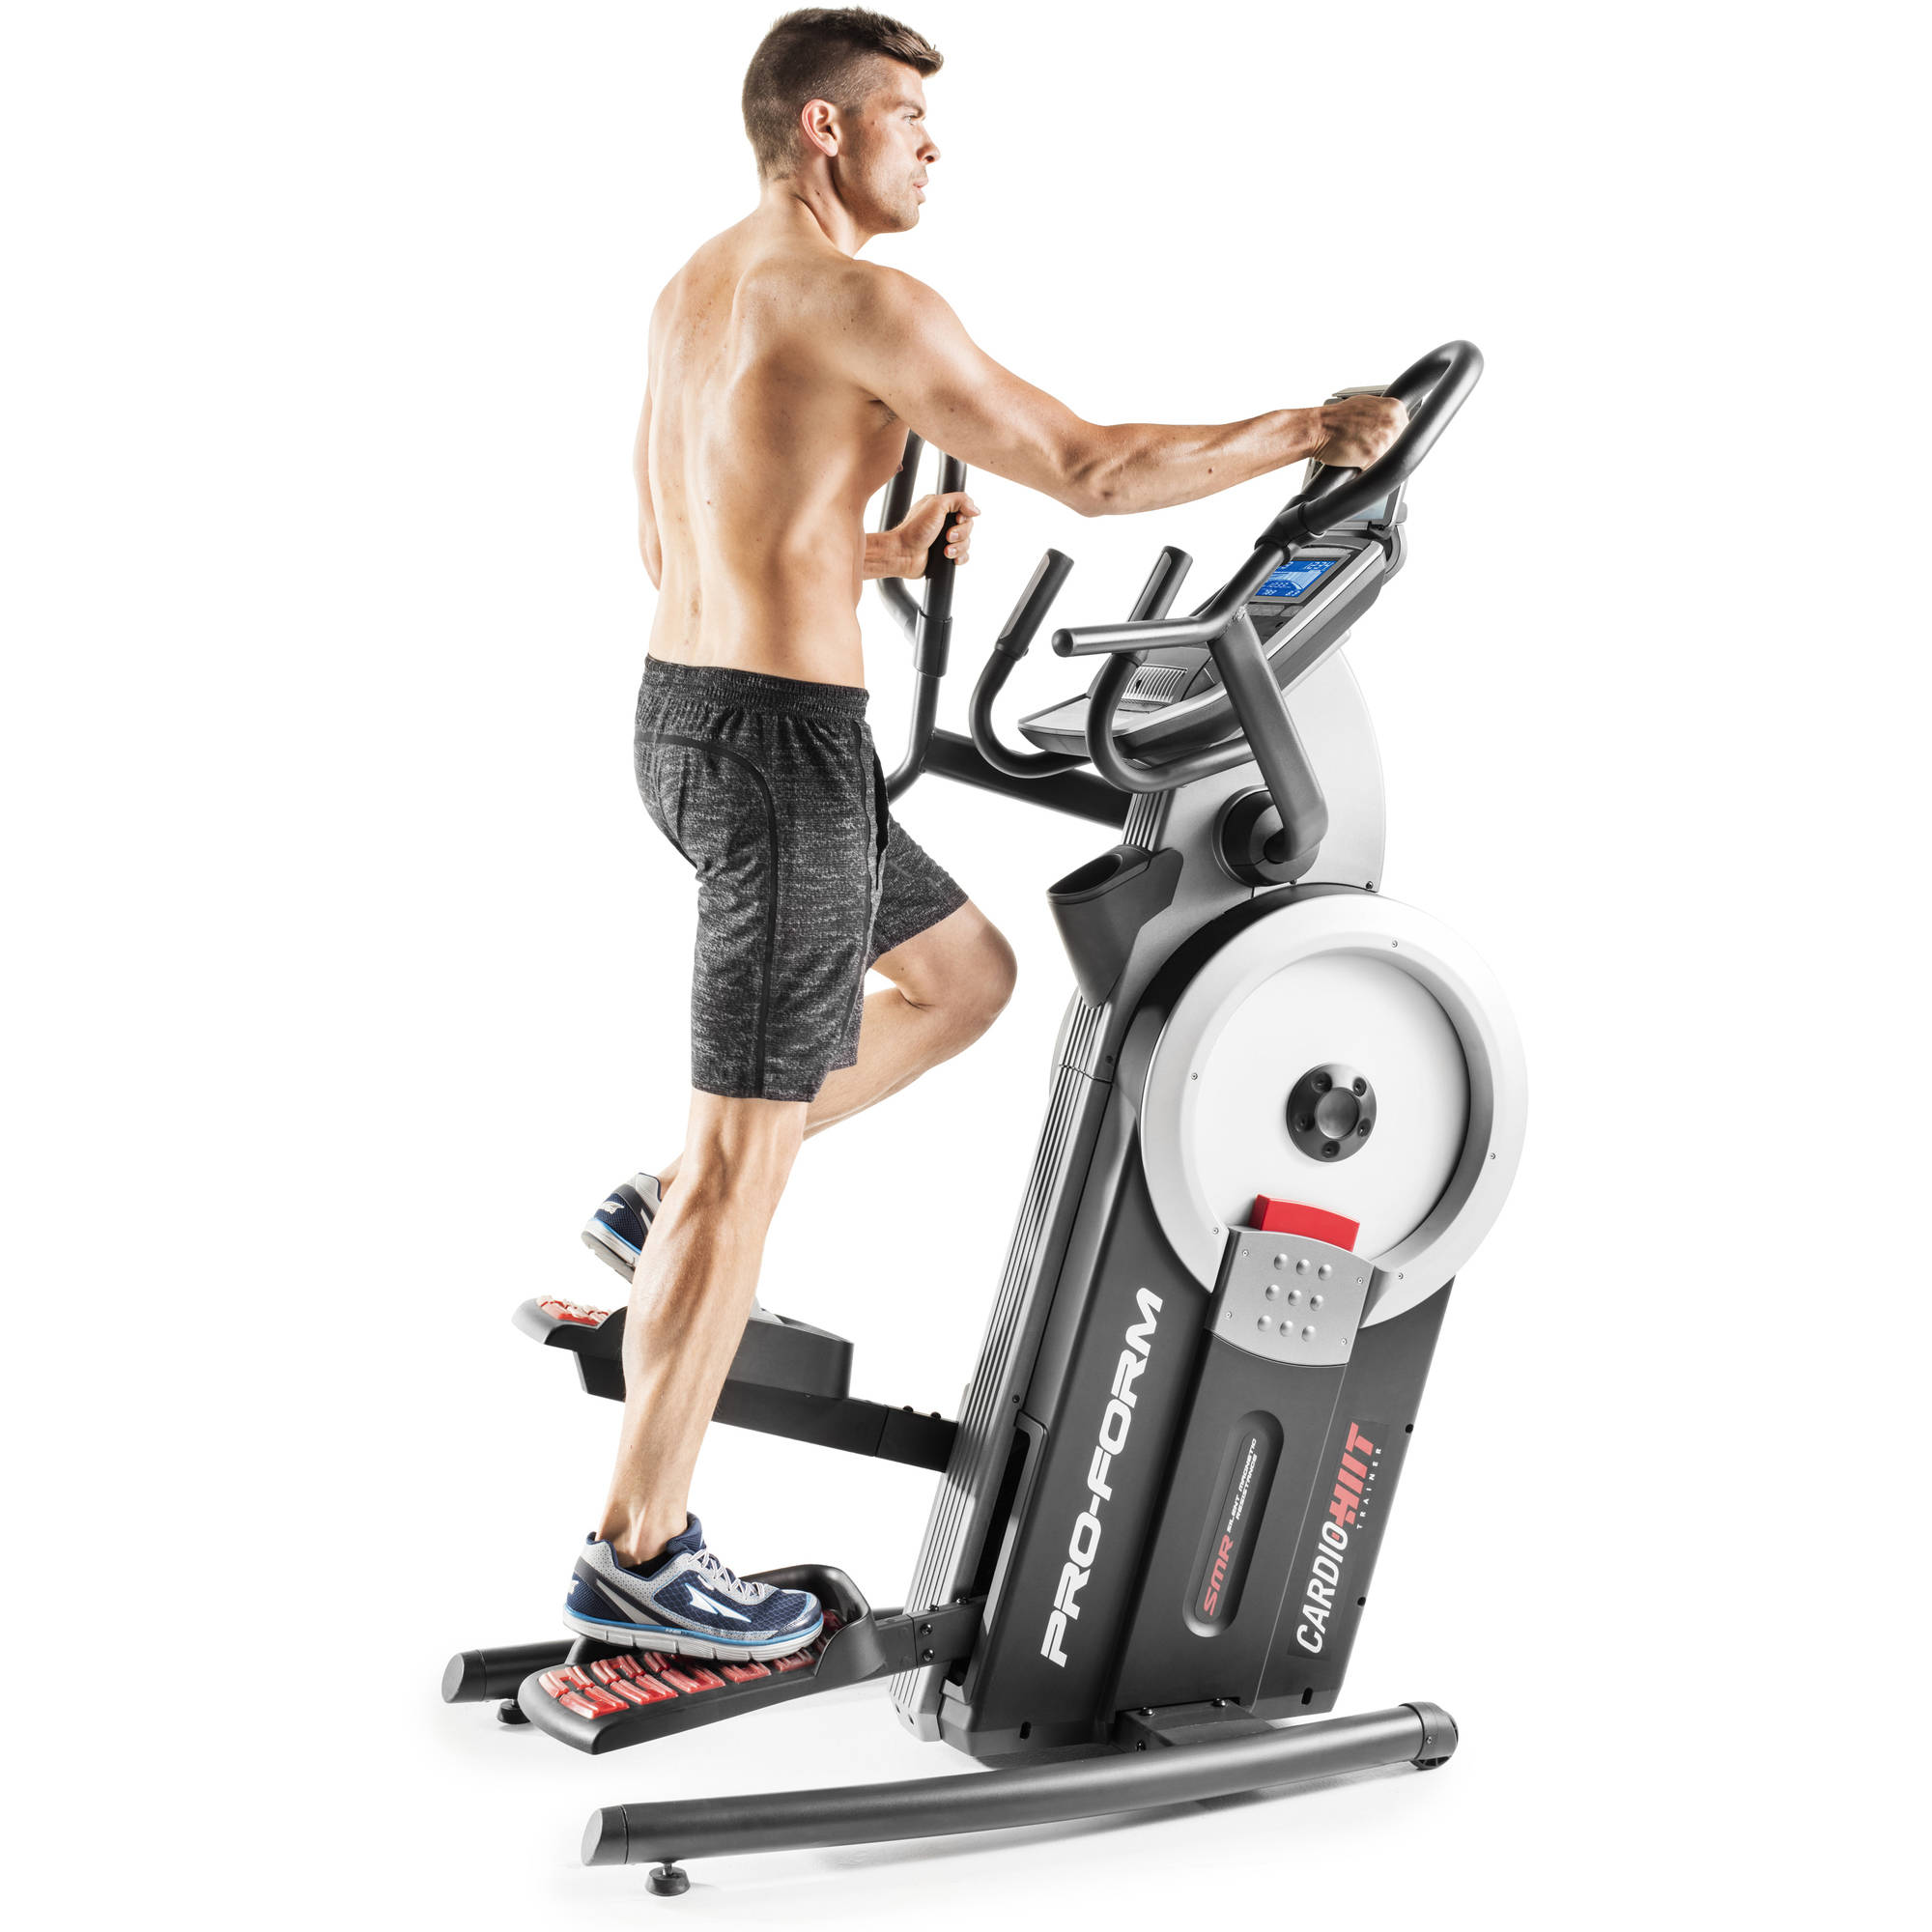 ProForm HIIT Trainer, Hybrid Elliptical and Stepper